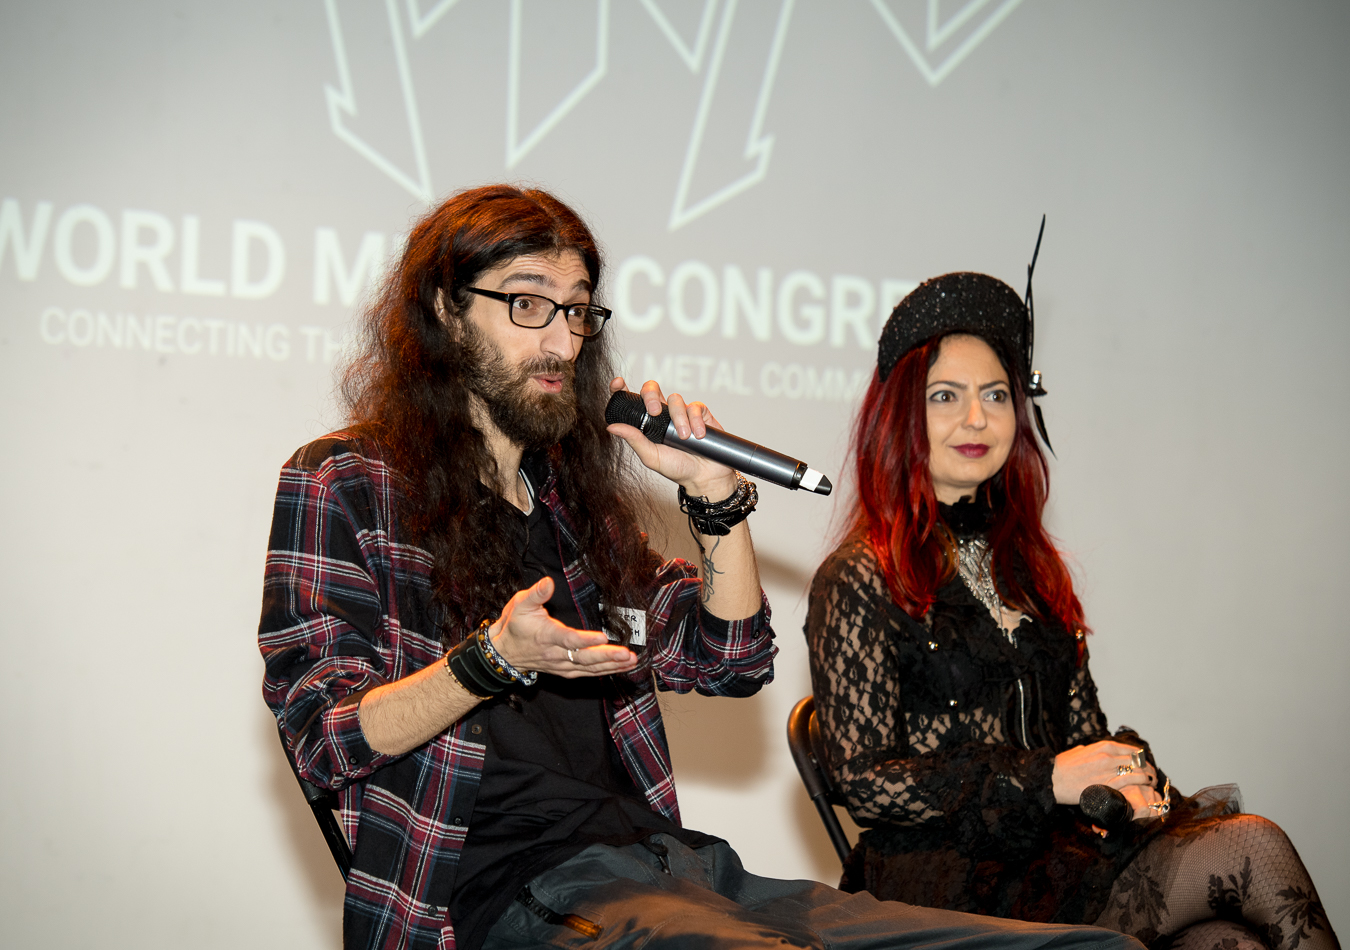 WorldMetalCongress-TinaK-9646.jpg